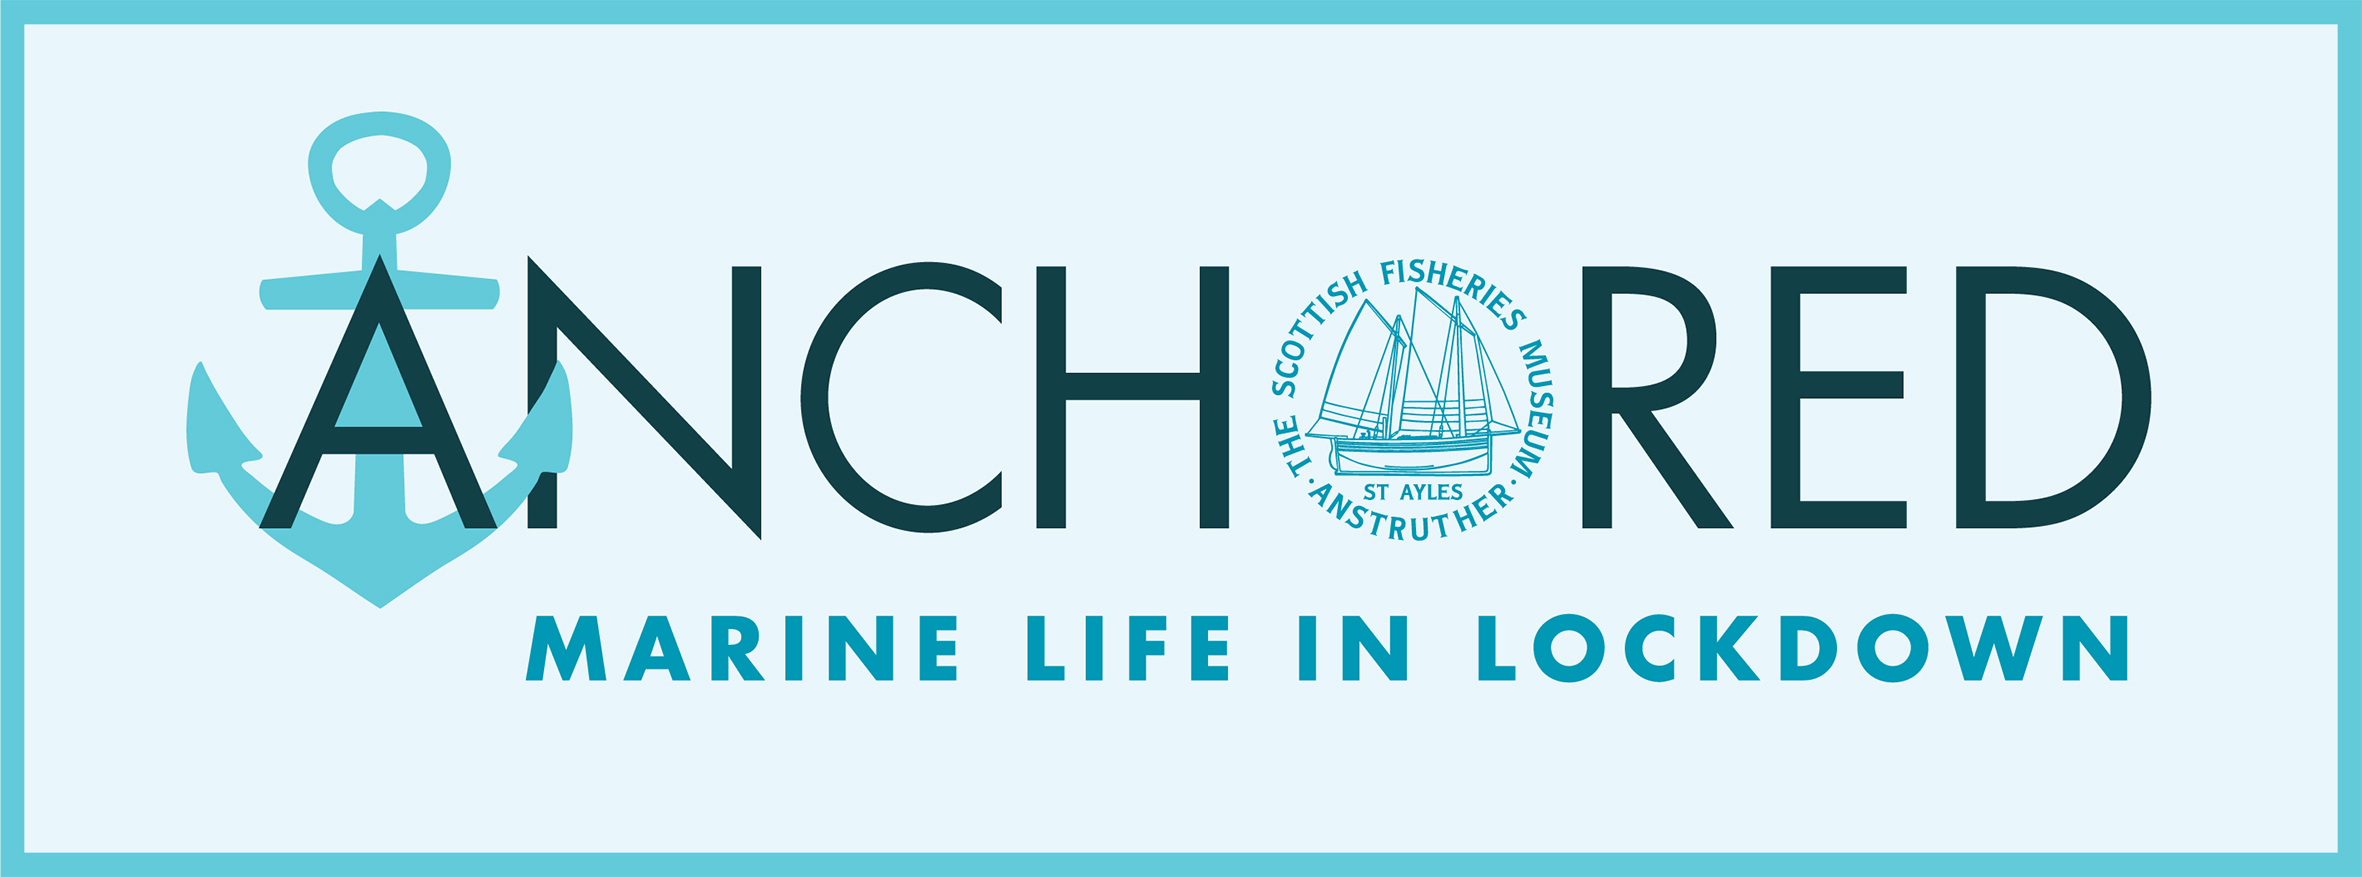 The Scottish Fisheries Museum Presents 'Anchored: Marine Life in Lockdown'